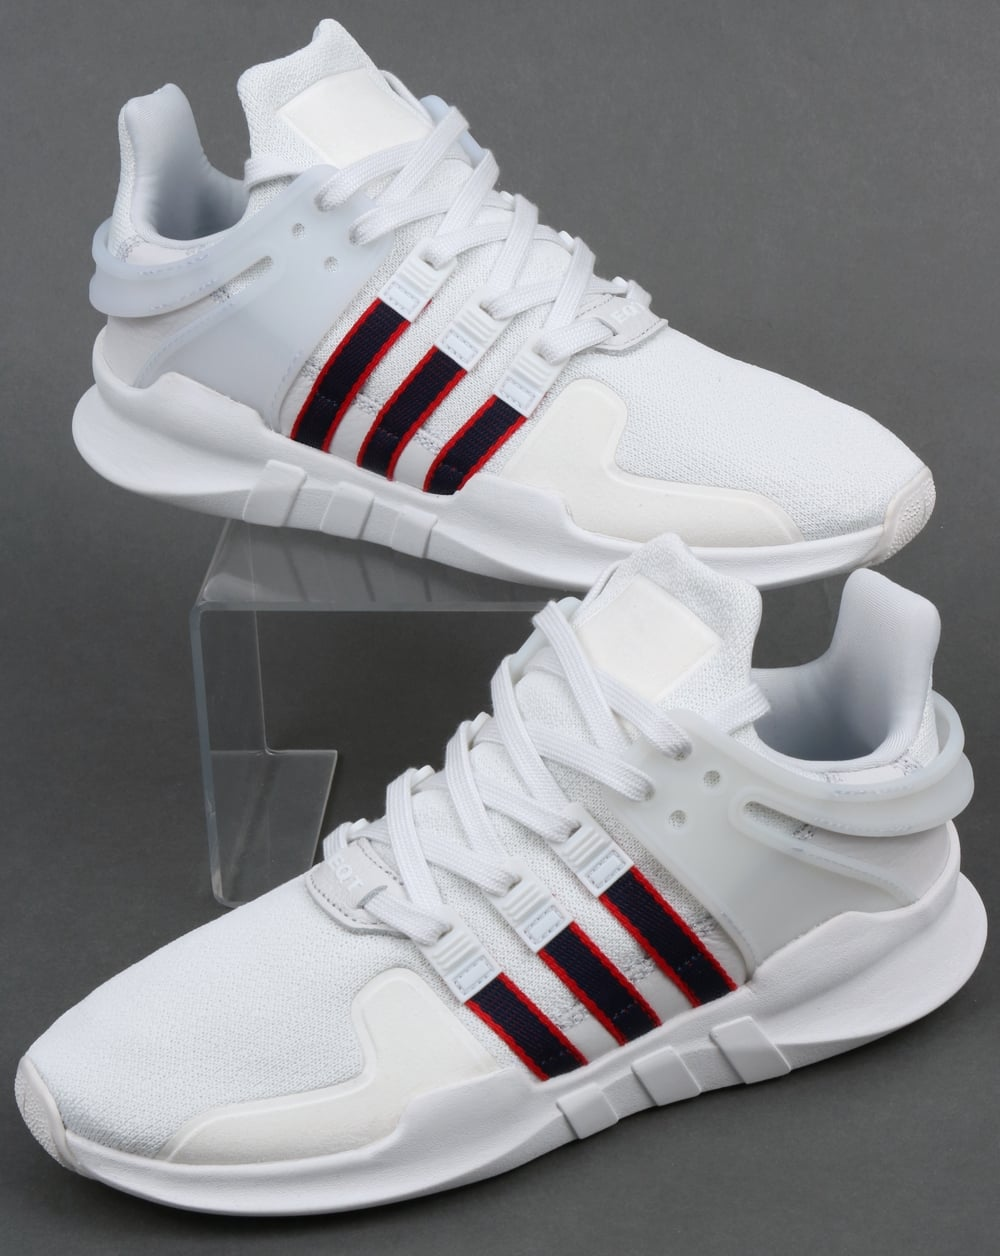 adidas EQT Support ADV Navy White in 2019 | Wish list